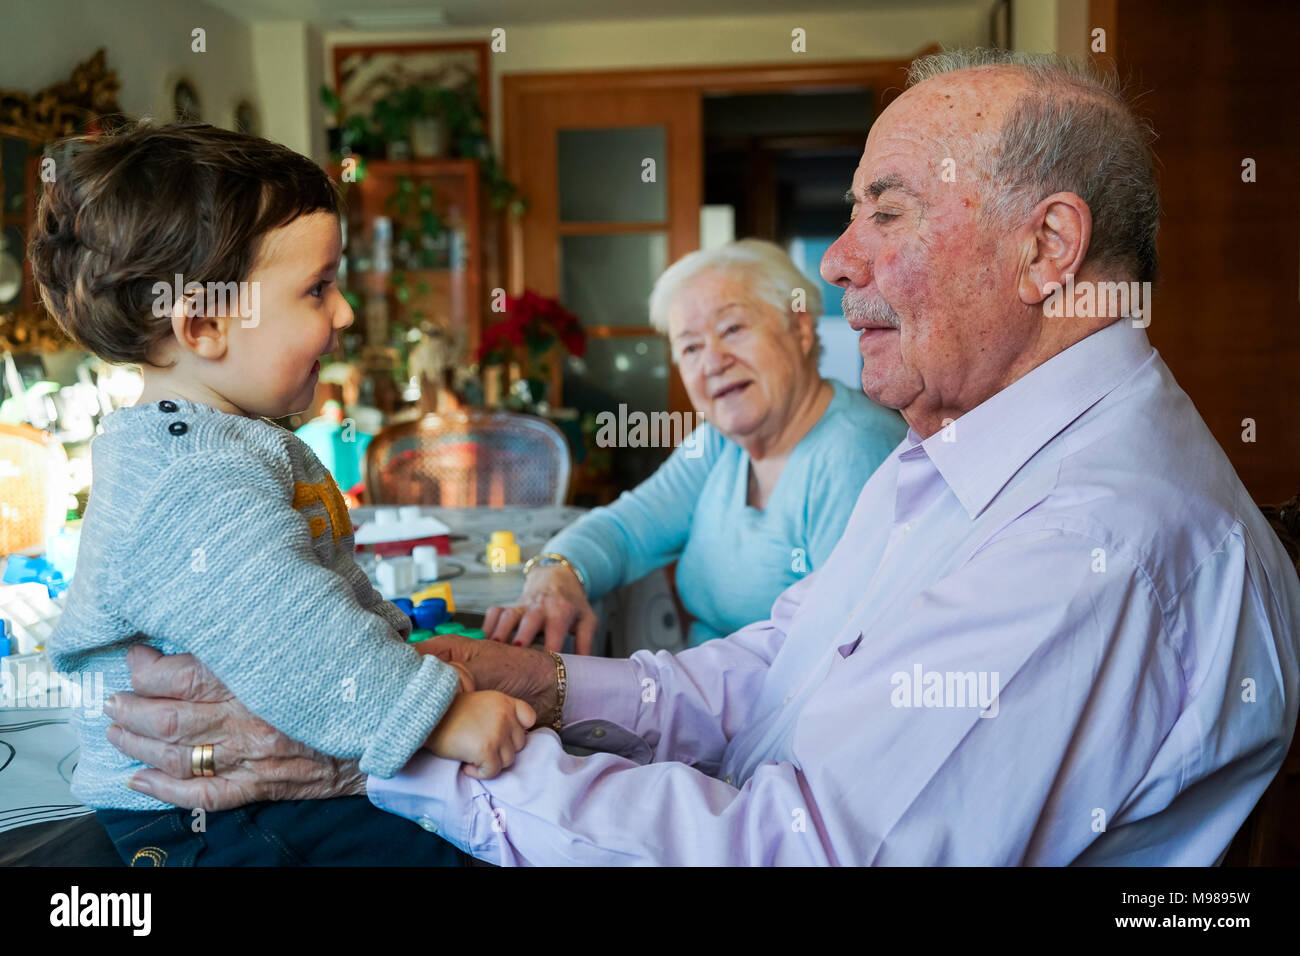 Great-grandparents playing with baby girl at home - Stock Image